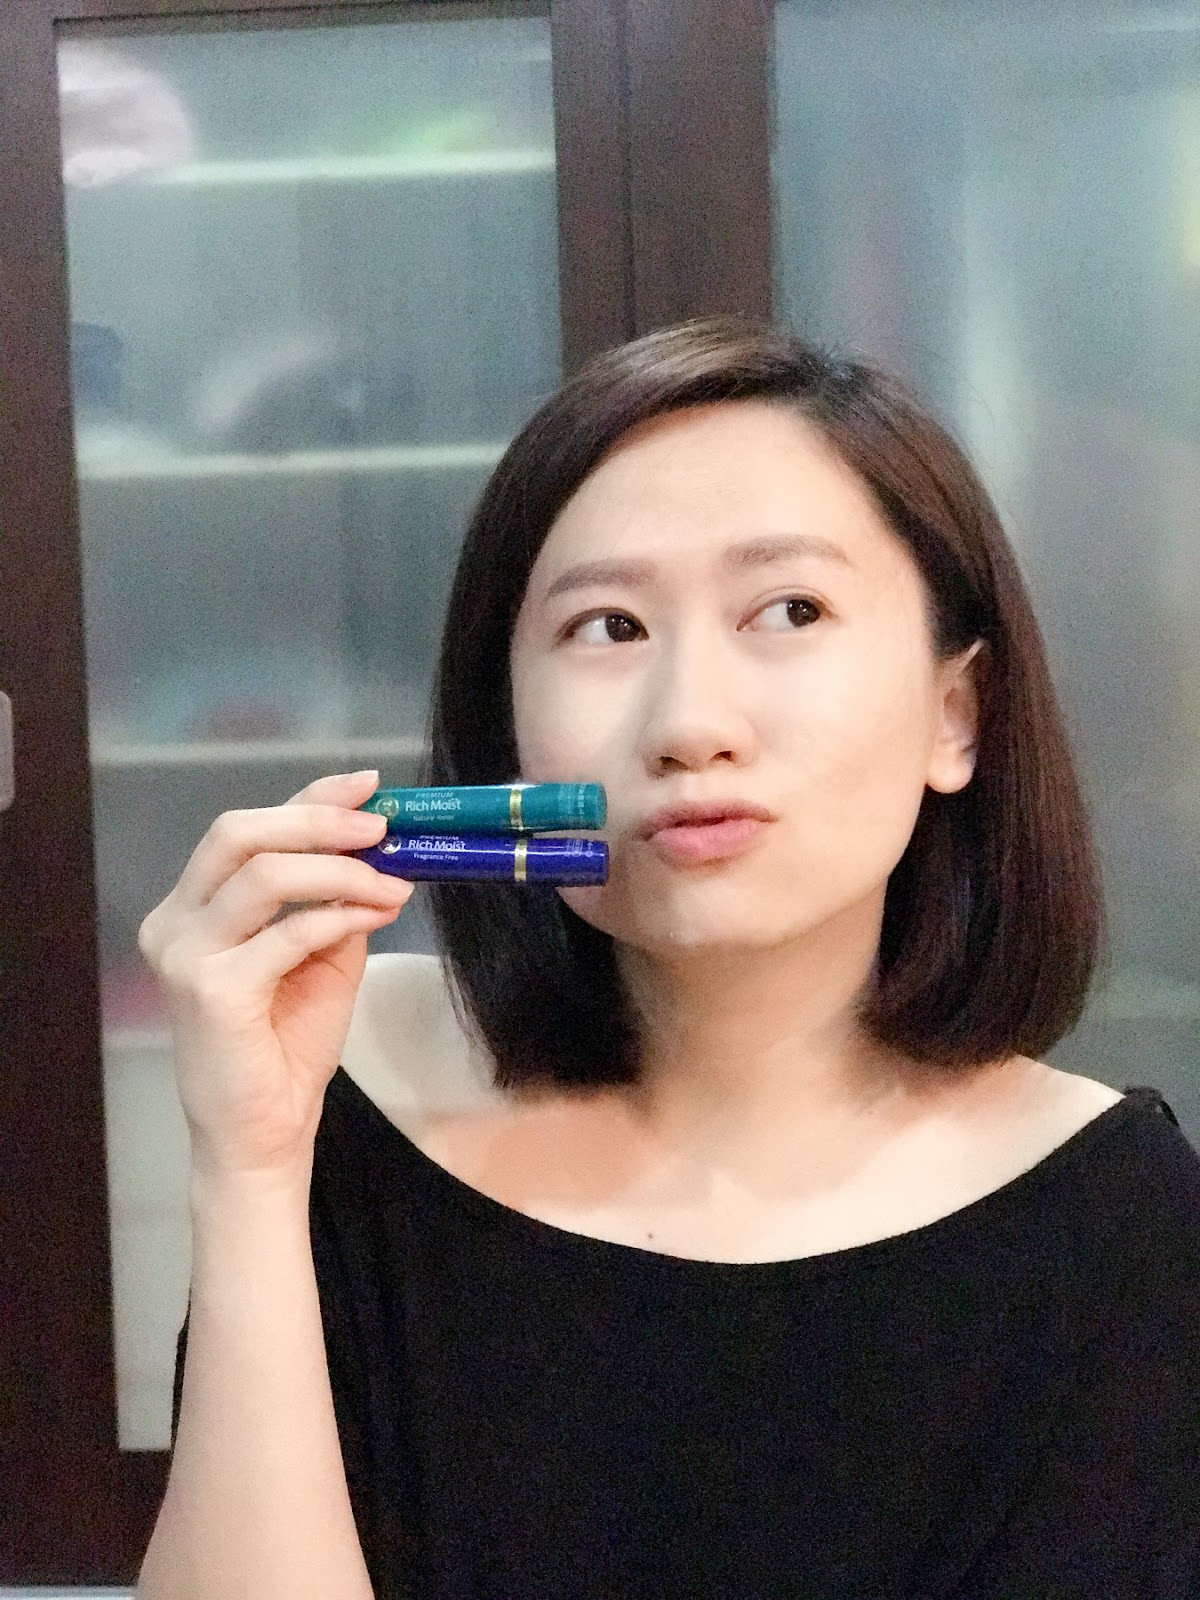 Mentholatum Premium Rich Moist - An Ultra Nourishing Lipbalm for Those Deserving Lips